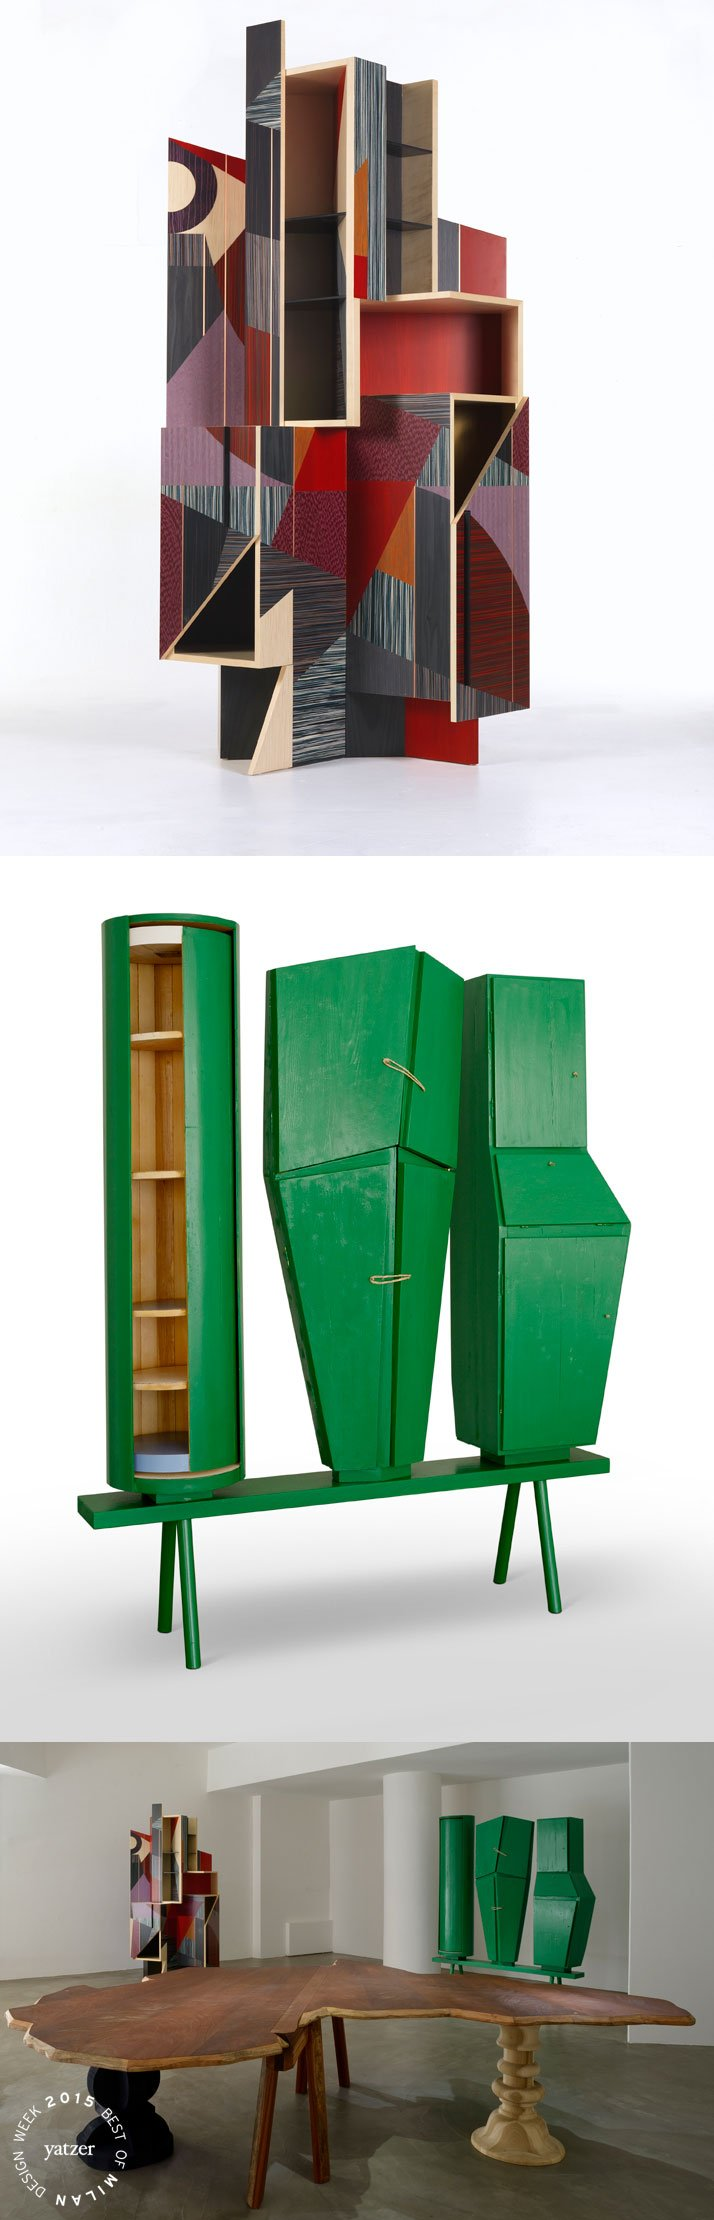 9 + uno (nine plus one) exhibition at DILMOS Gallery. From top to bottom:> Magico3 cabinet by Alessandro Mendini, a 3-piece edition // 215x110x57cm // 2010. > African Farfalla folding table by Francesco Binfare. // width 270cm x length 308cm x height 76.5cm // Materials: Sapele Mahogany wood; hollow-cored panels clad with Feather Mahogany and veneered in Brazilian Rosewood; finished with protective natural oils that accentuate the natural woodgrain. Hinges and closing devices in brass. // 2014.> Mobile Frontale sculpture-cabinet by Pietro Consagra // painted wood // 200x168x38cm // 1956/ 2015.